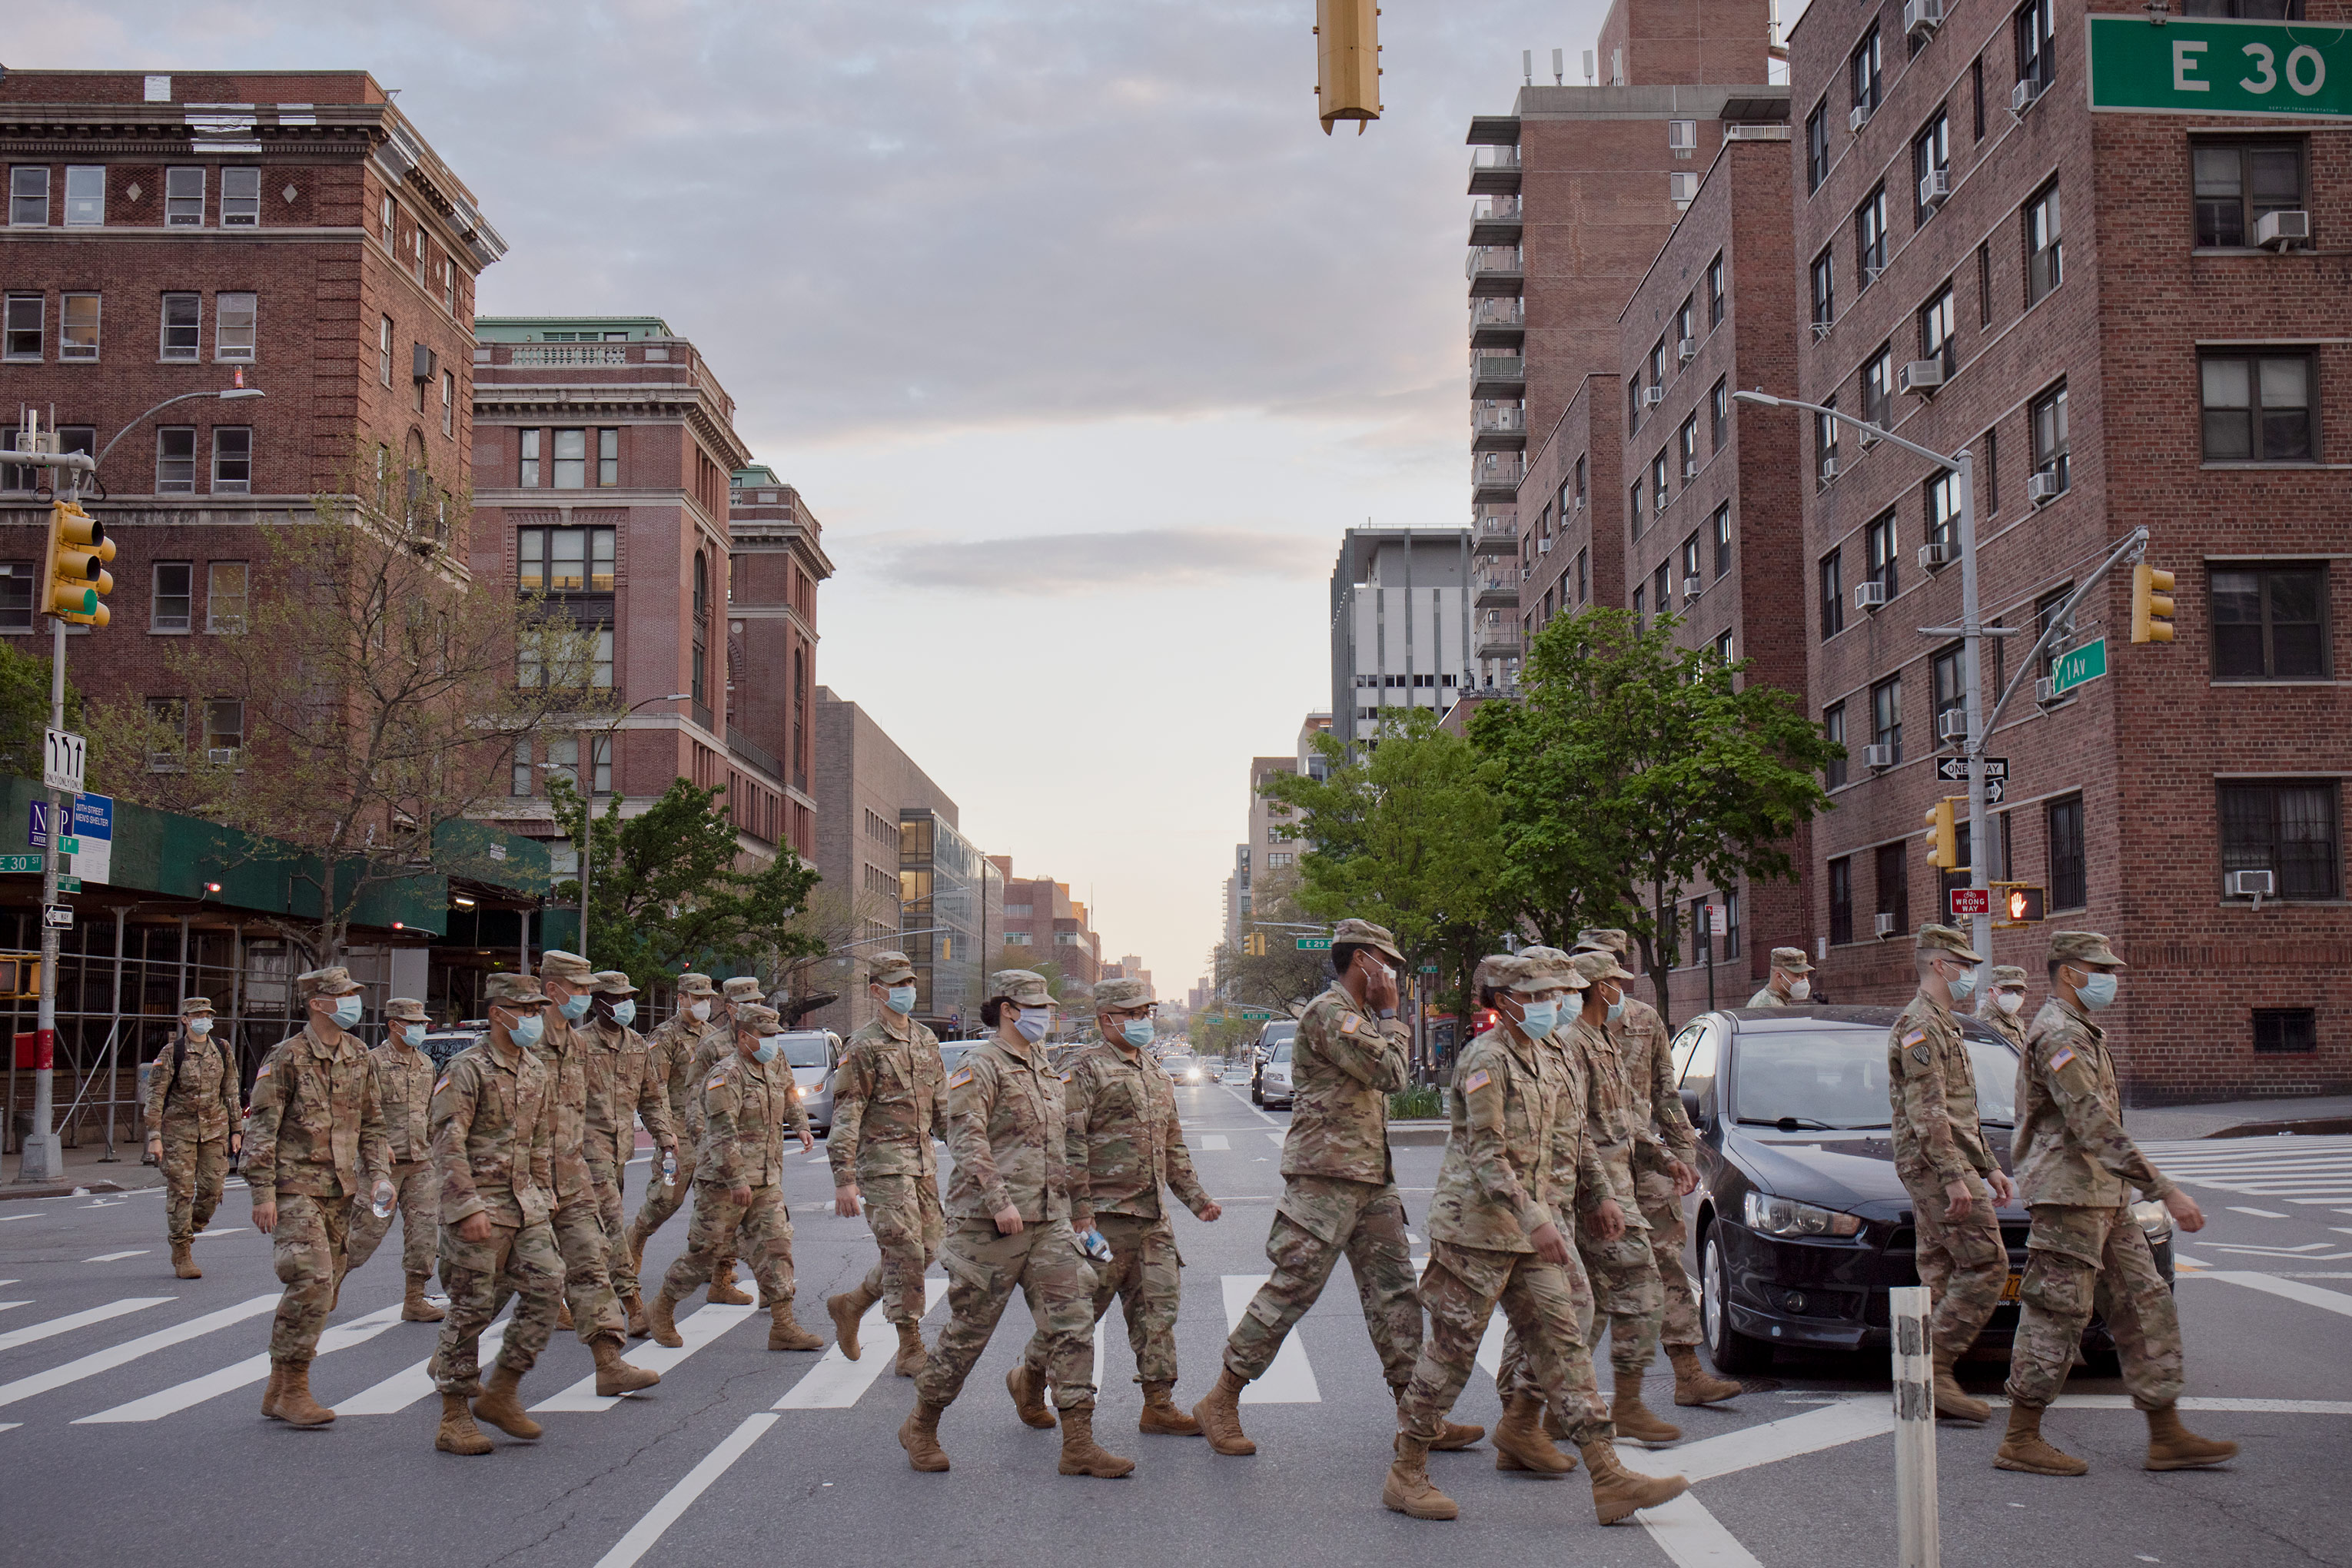 A group of U.S. service members leave a medical examiner's disaster morgue on May 2 to head to their hotels for the night.